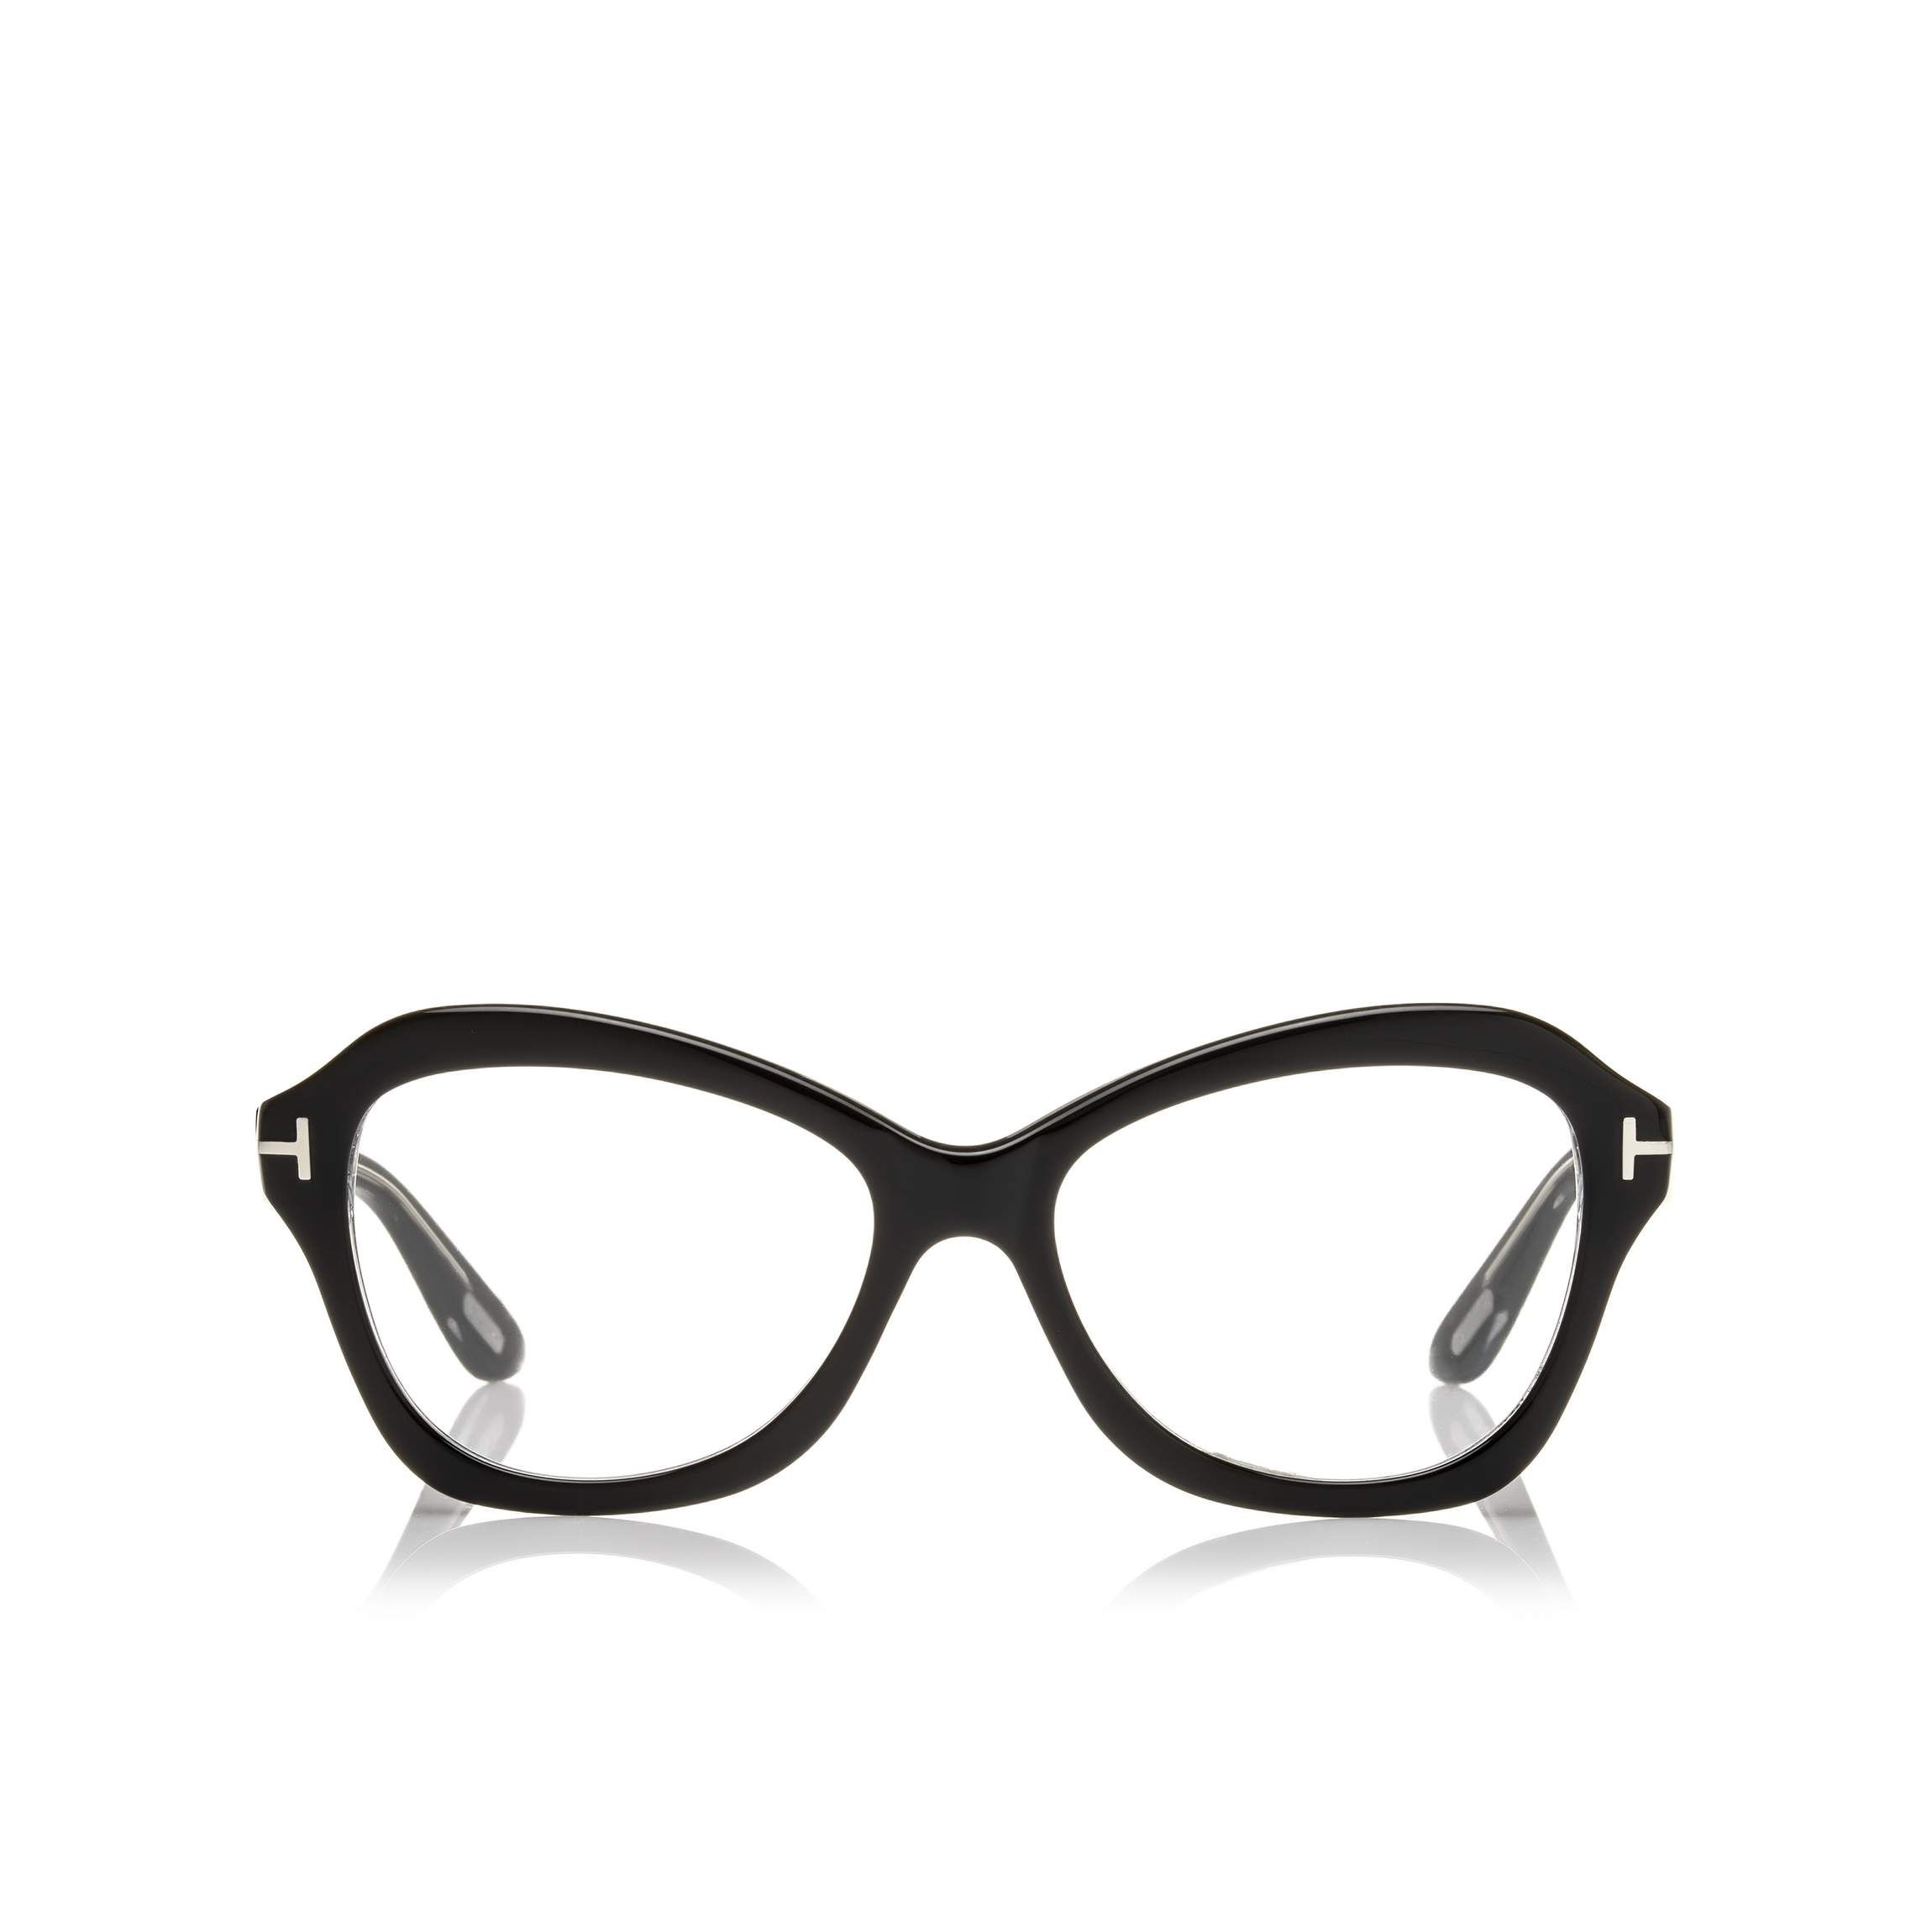 7cfbd922a98 Glasses · Tom Ford Soft rounded butterfly acetate style with metal  T   temple decoration Tom Ford